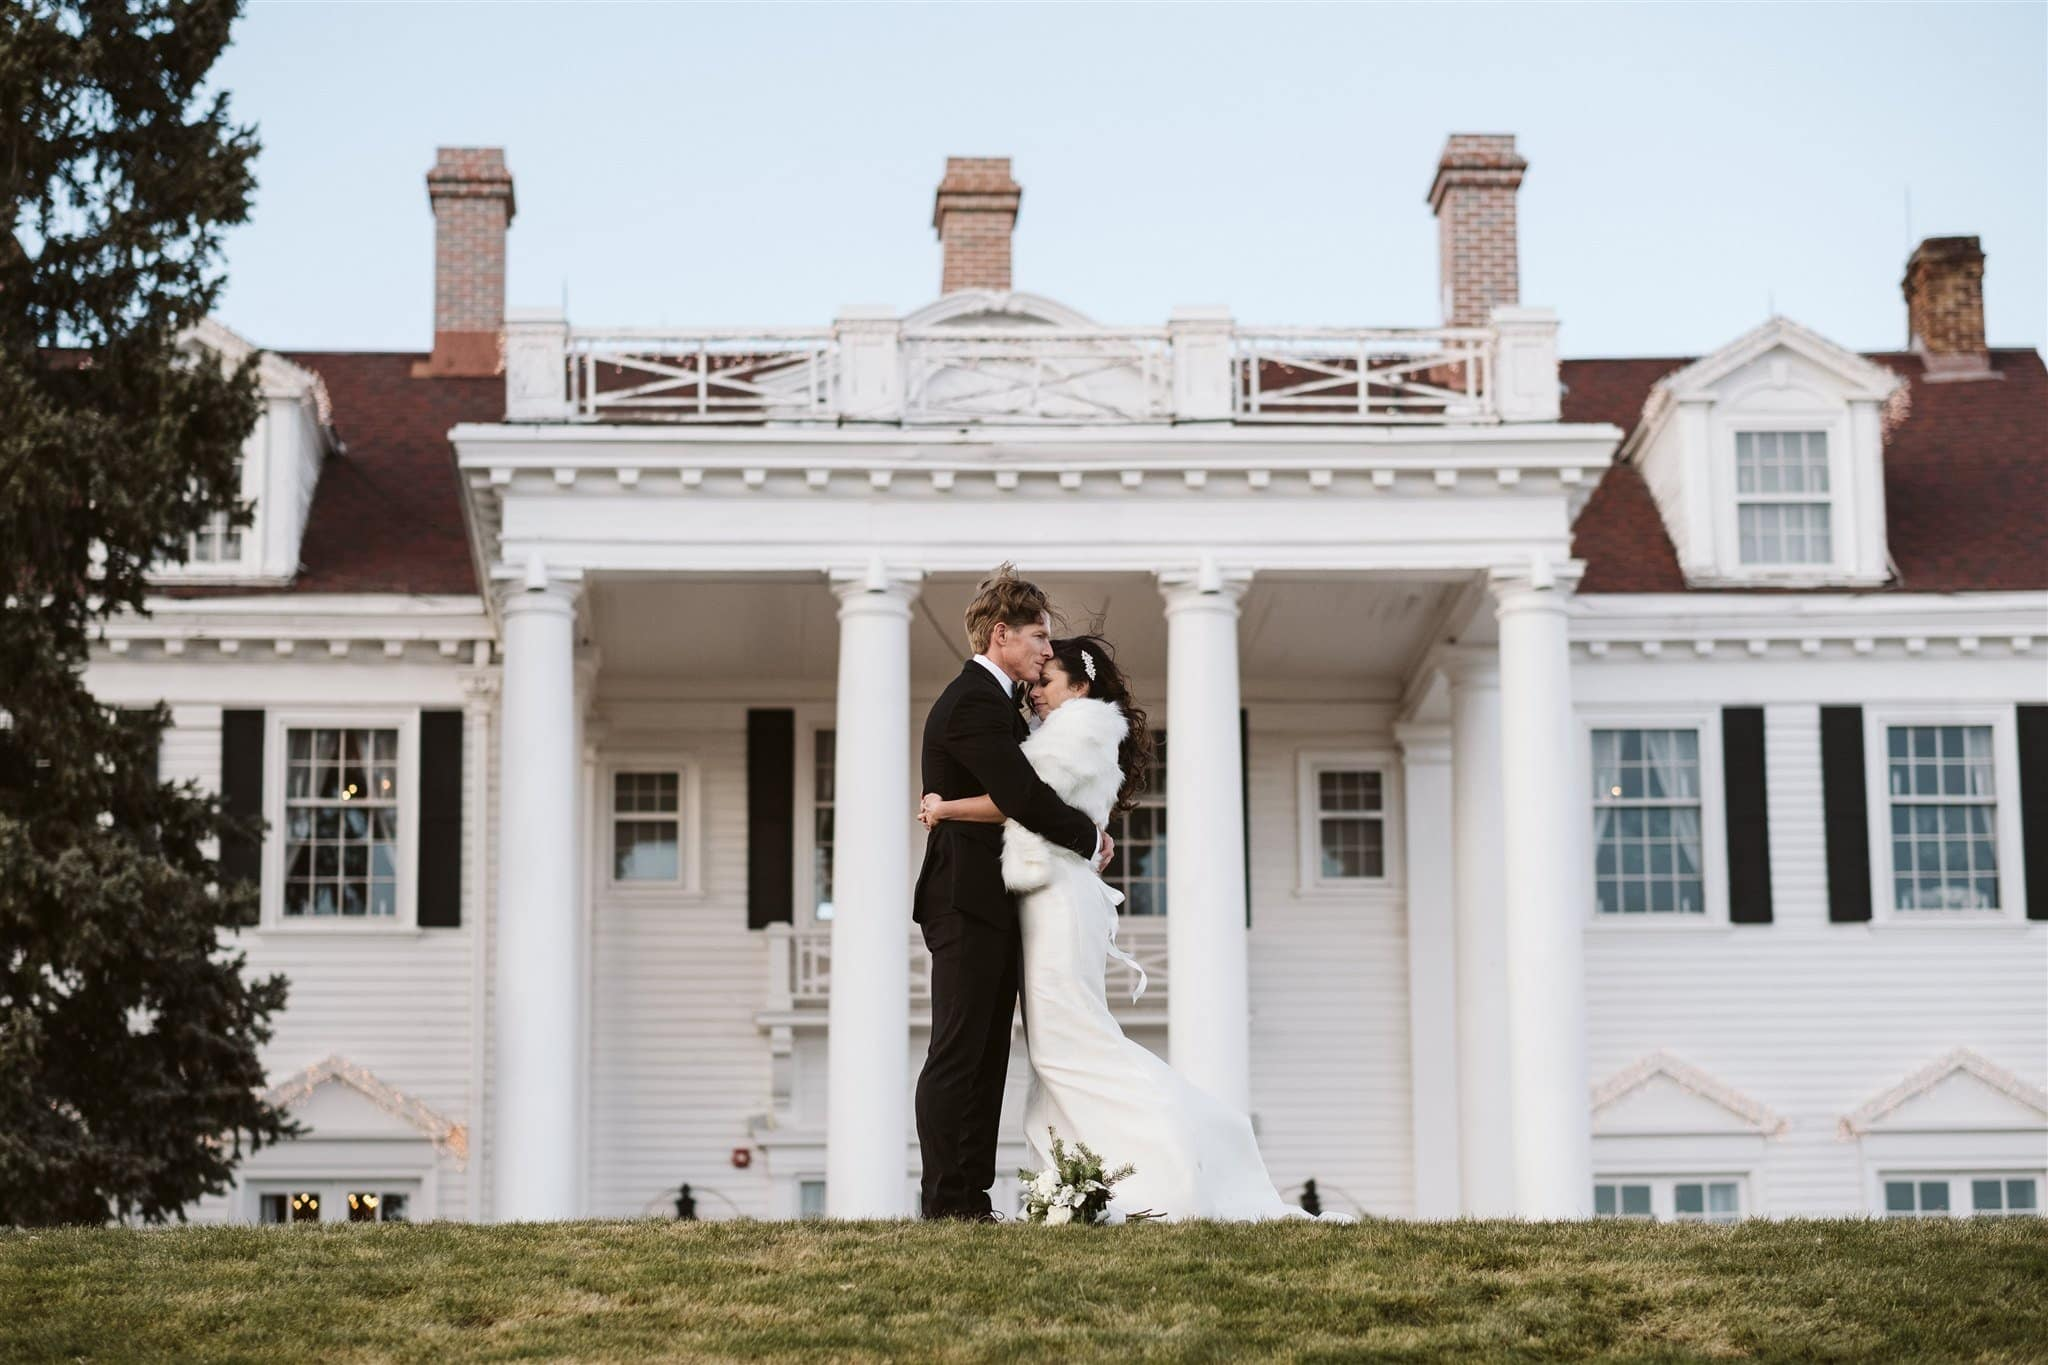 Bride and groom wedding portraits at The Manor House in Denver